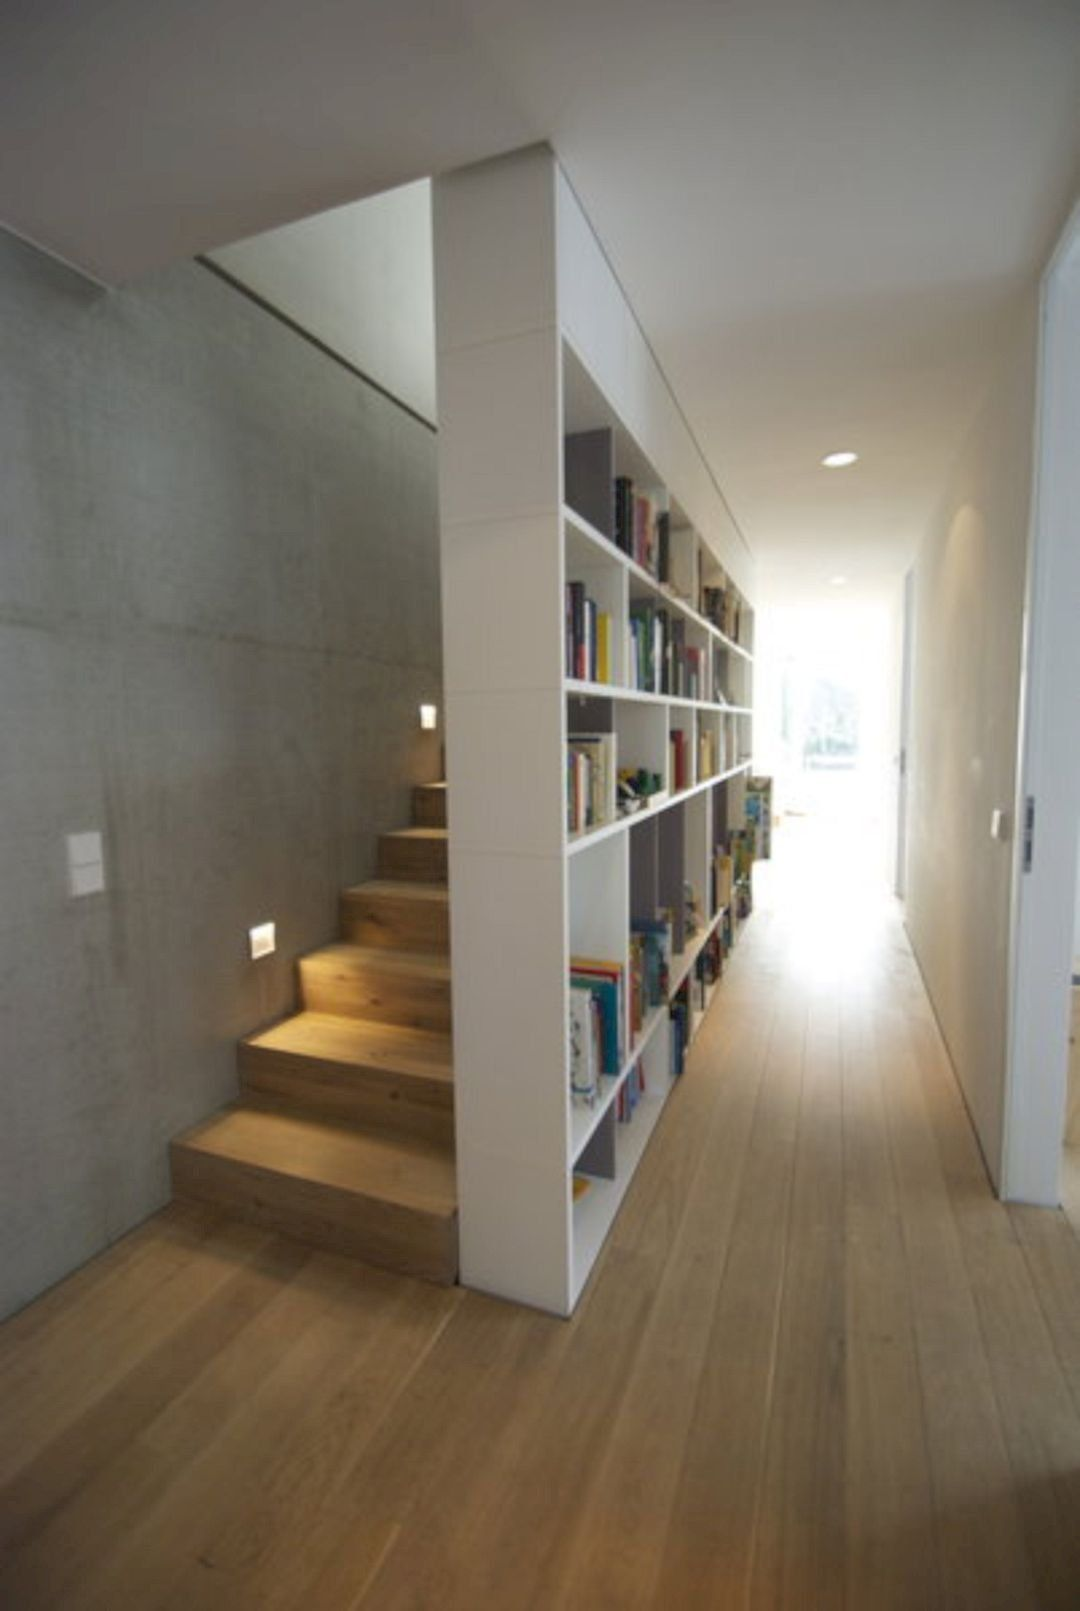 Interior LP Spatial Remodeling of Apartment Interior with Eastern Minimalism